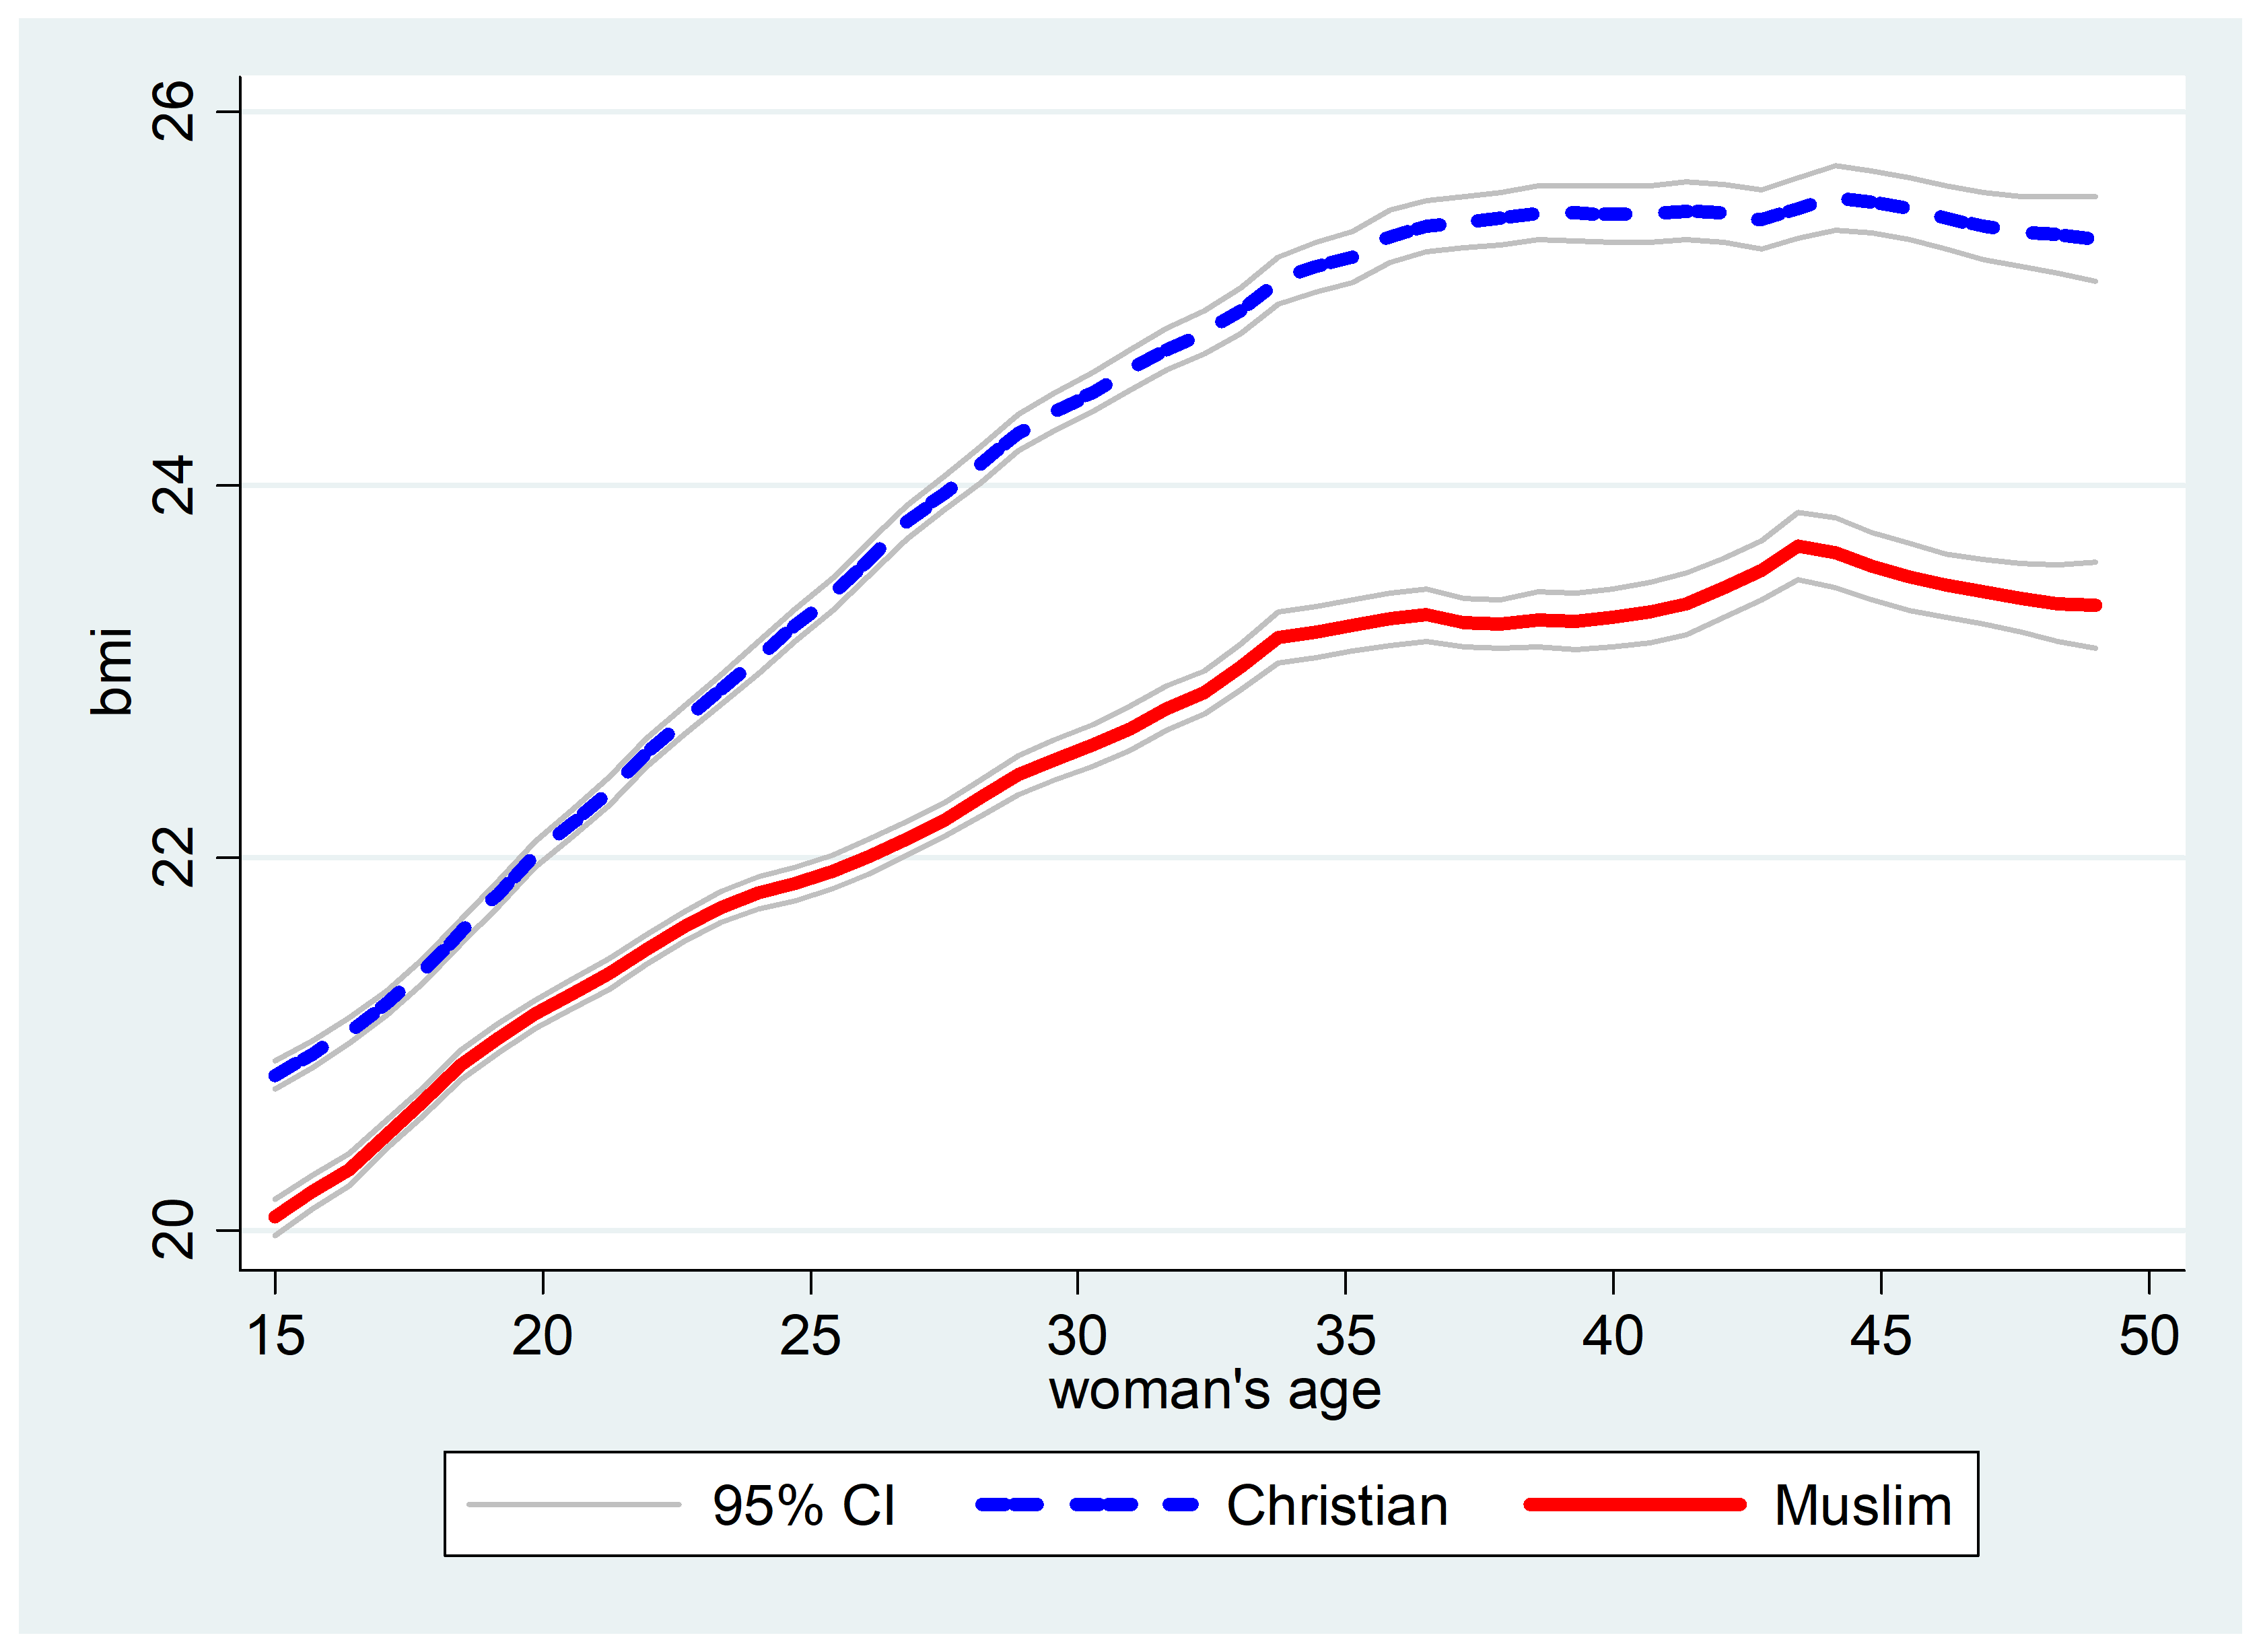 A graph depicting BMI by age and religion